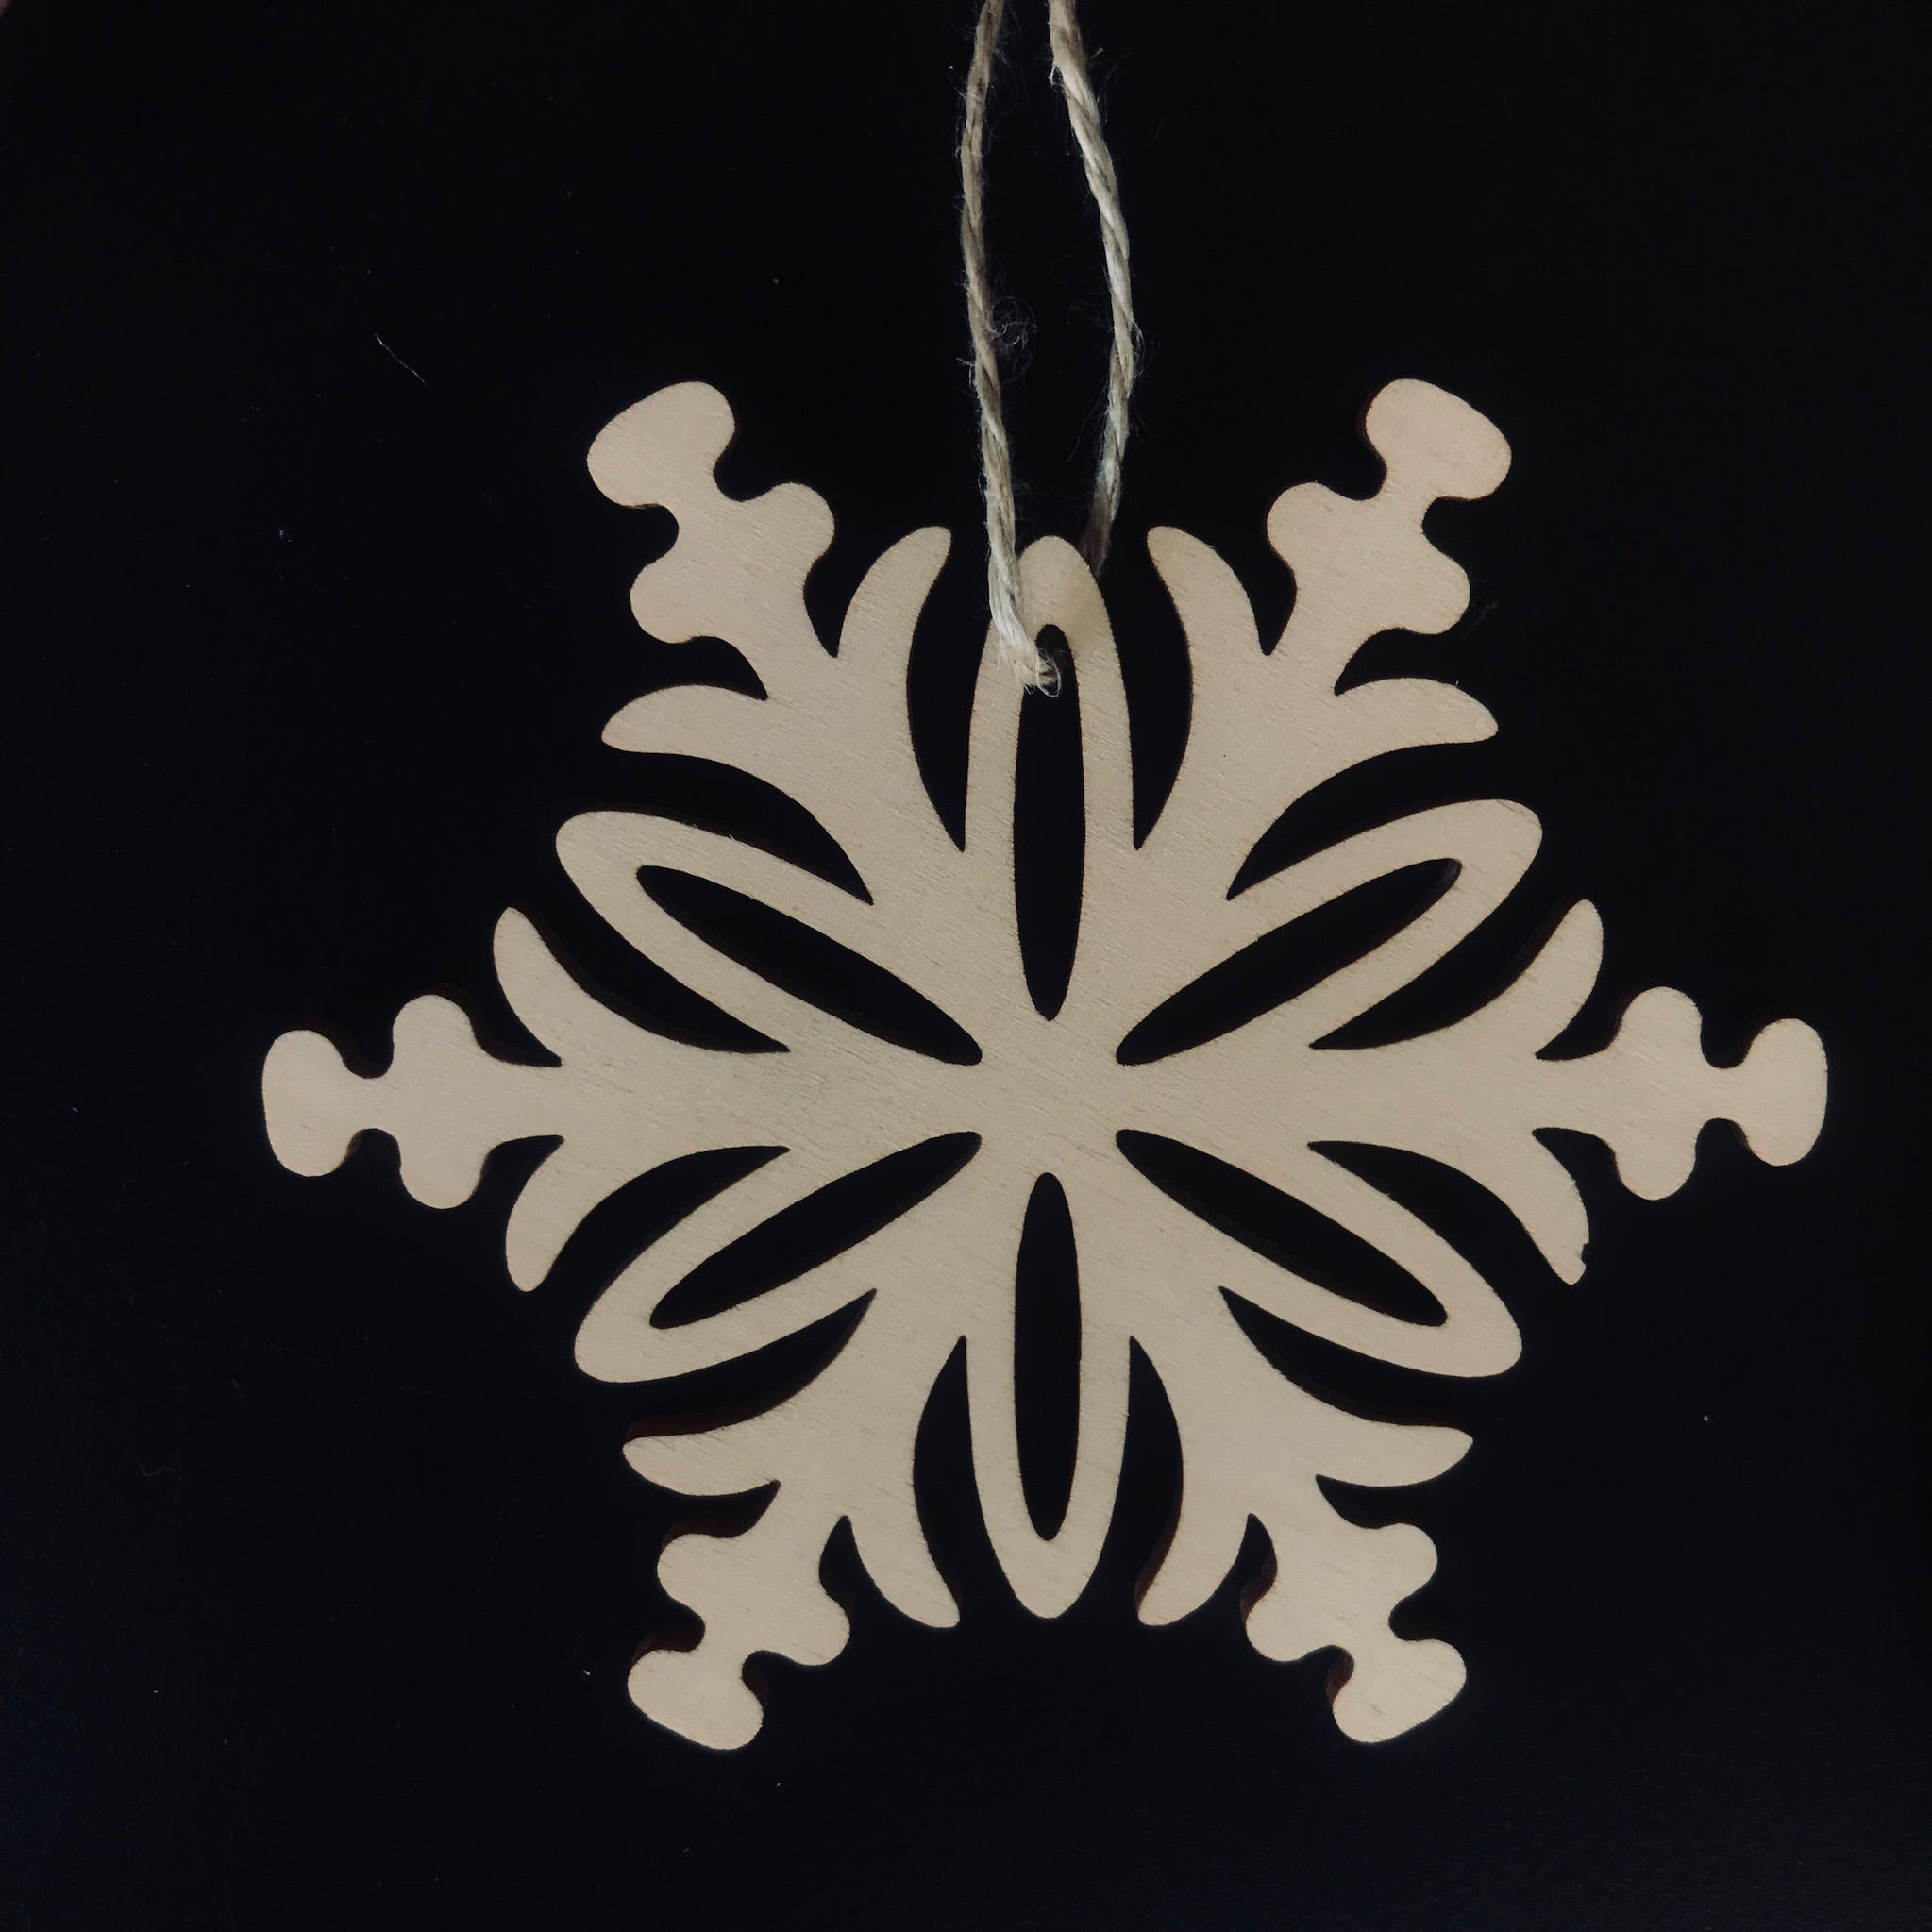 Cose Nuove Wooden Snowflake Ornament